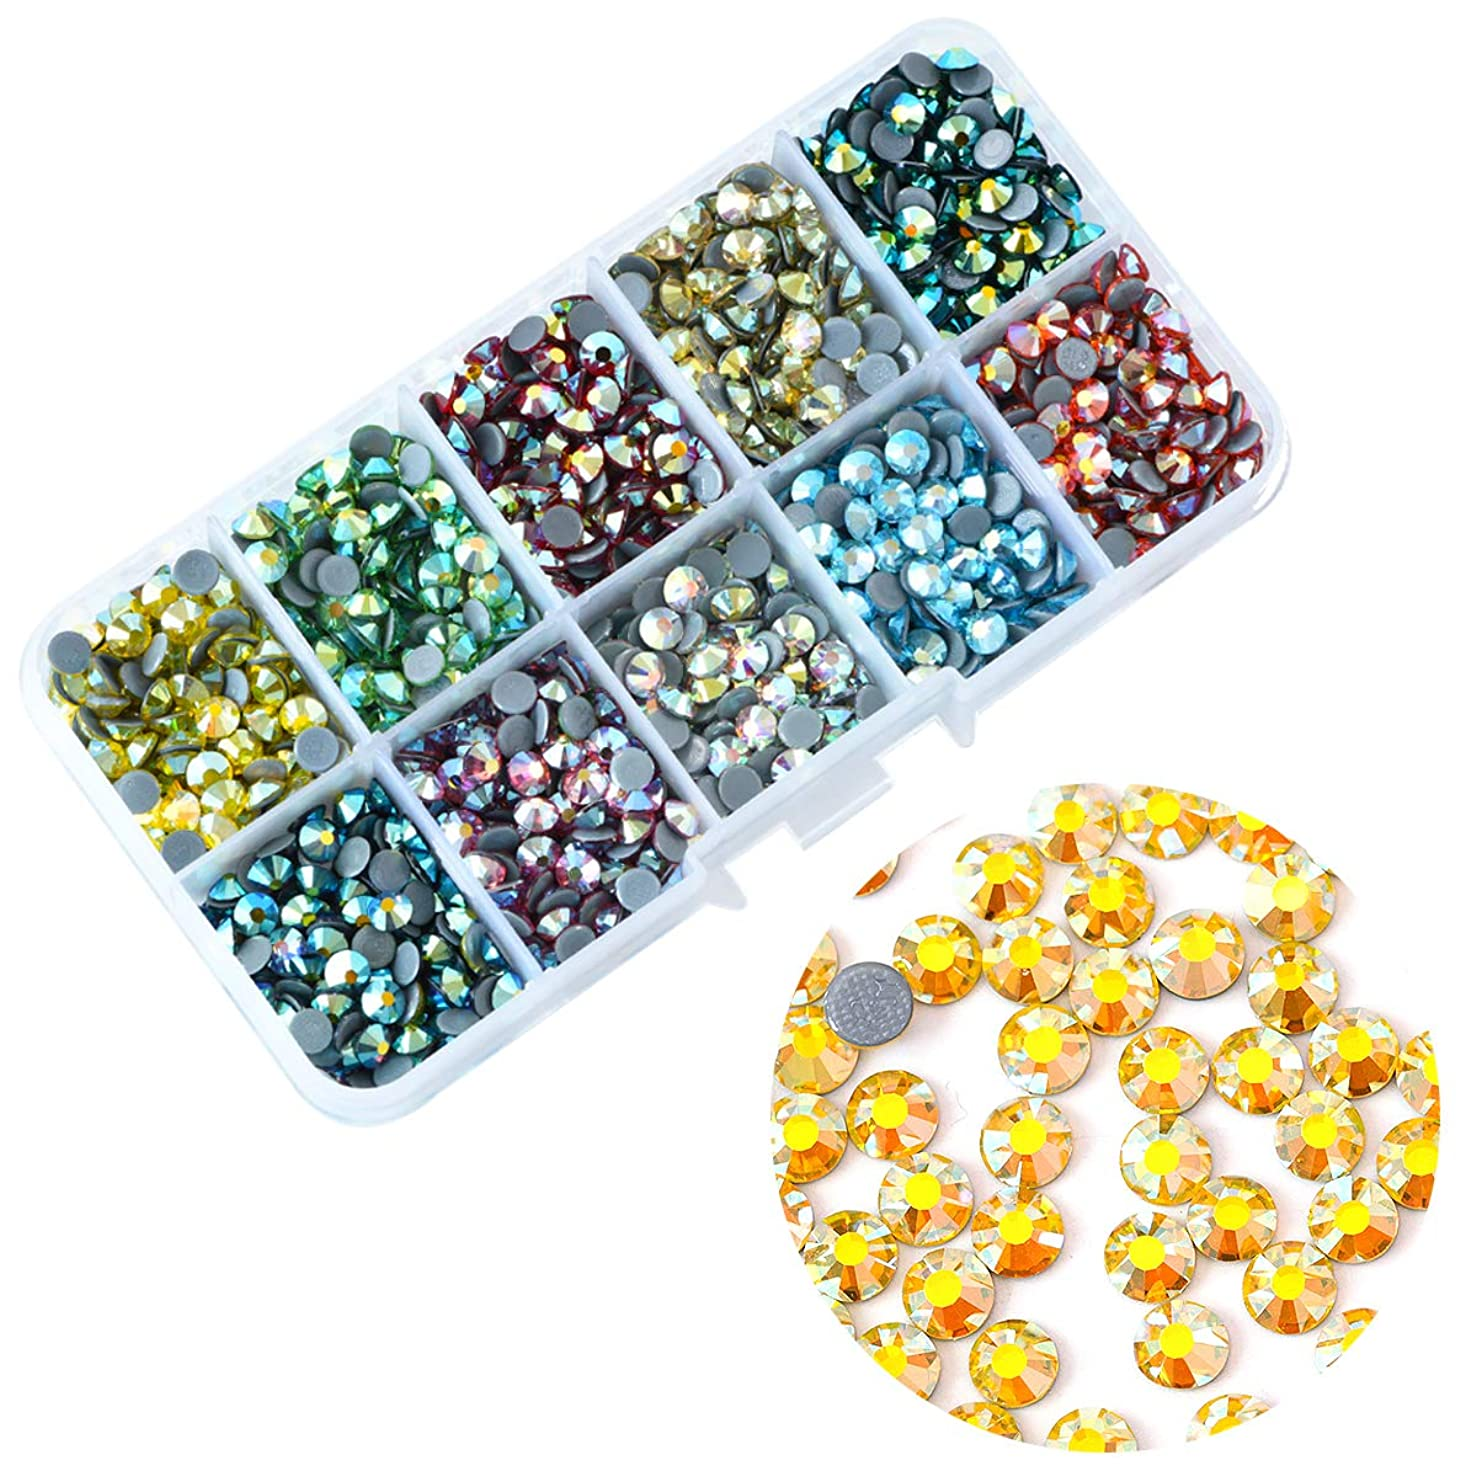 BLIINGINBOX 1000pcs Mix Colors AB with Box, 10 Colors ss16(3.8-4.0mm) Hotfix Rhinesstone Garment Crystal Glass Material